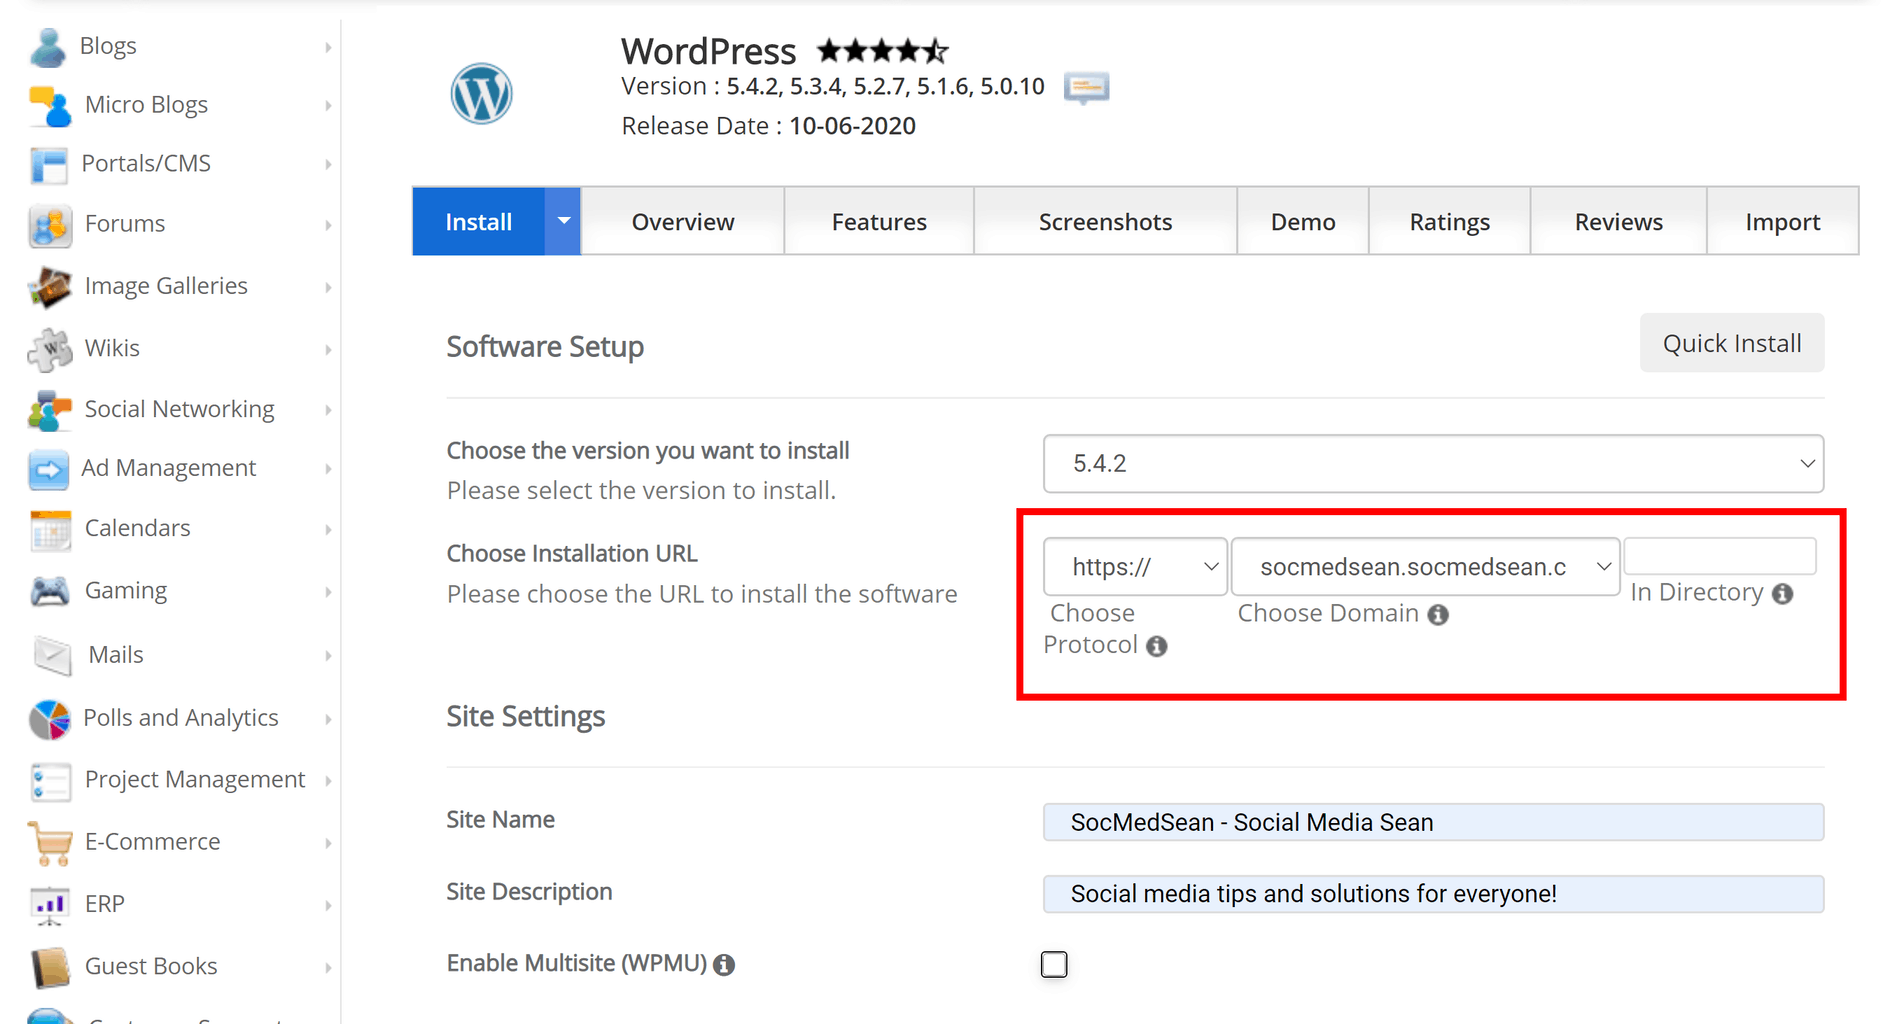 Configure your new WordPress instance using the installer tool.